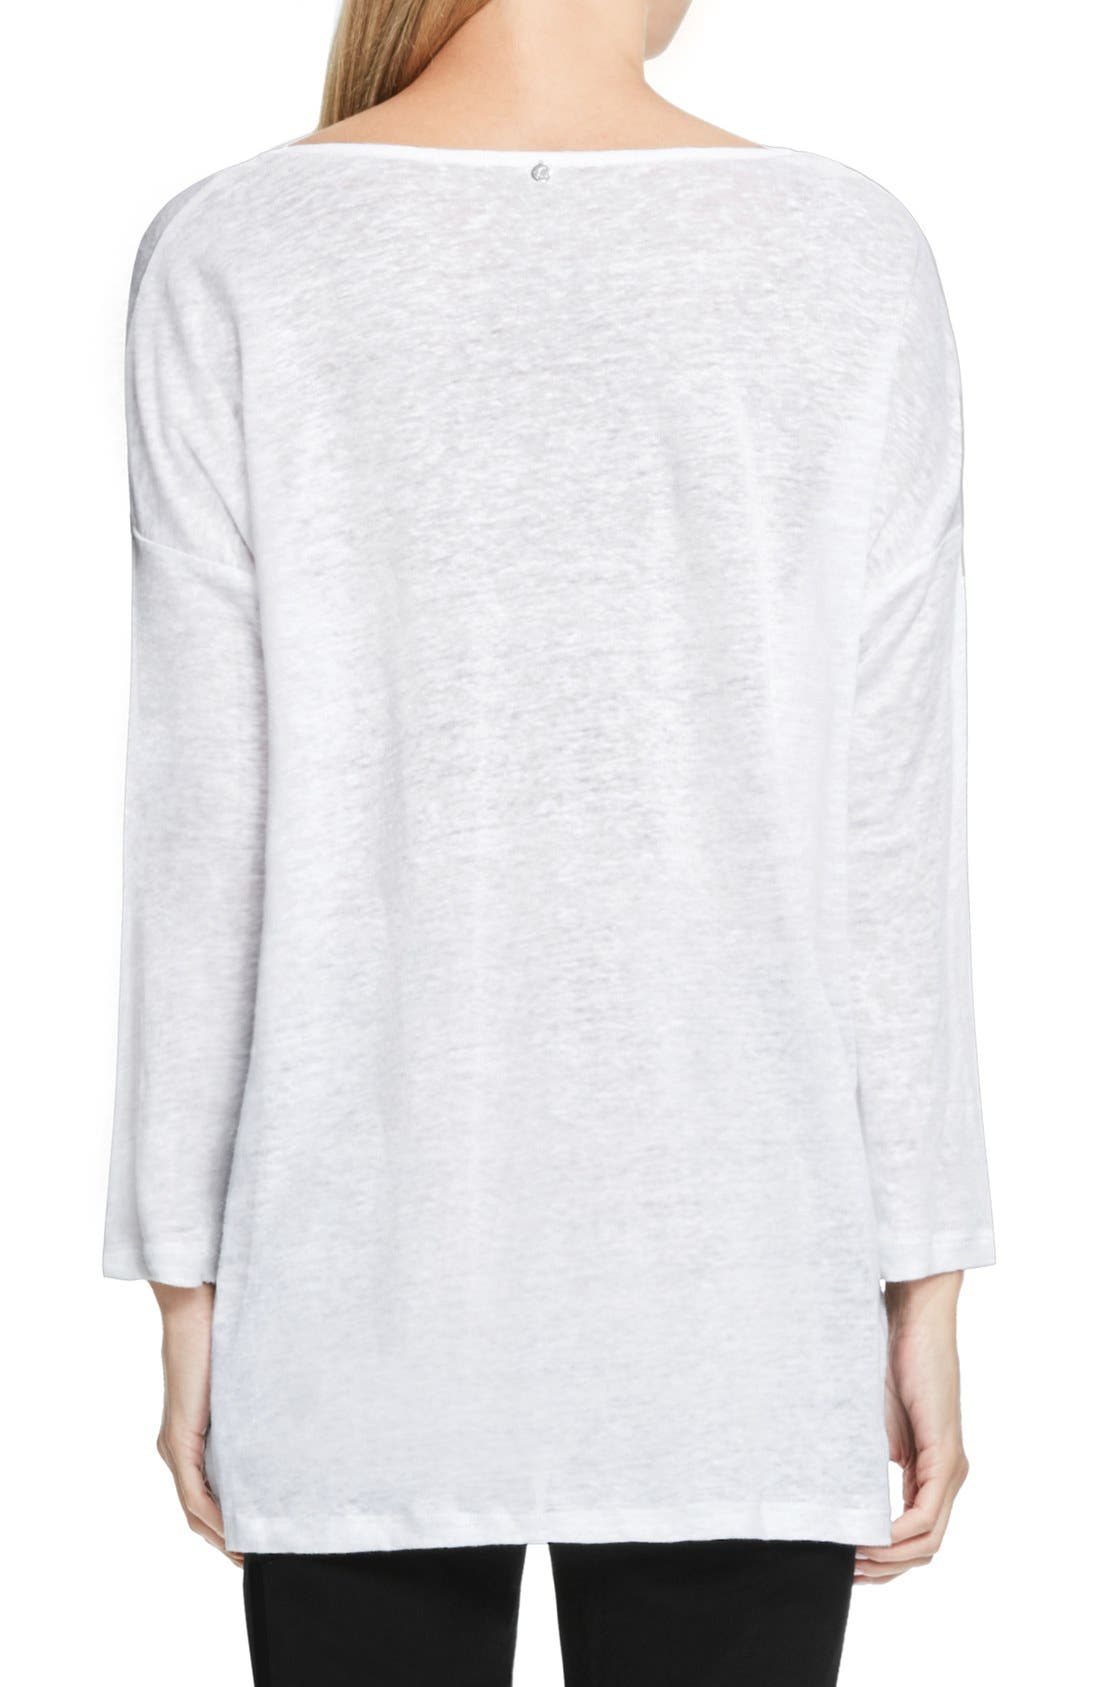 Alternate Image 2  - Two by Vince Camuto Seam Detail Linen Tee